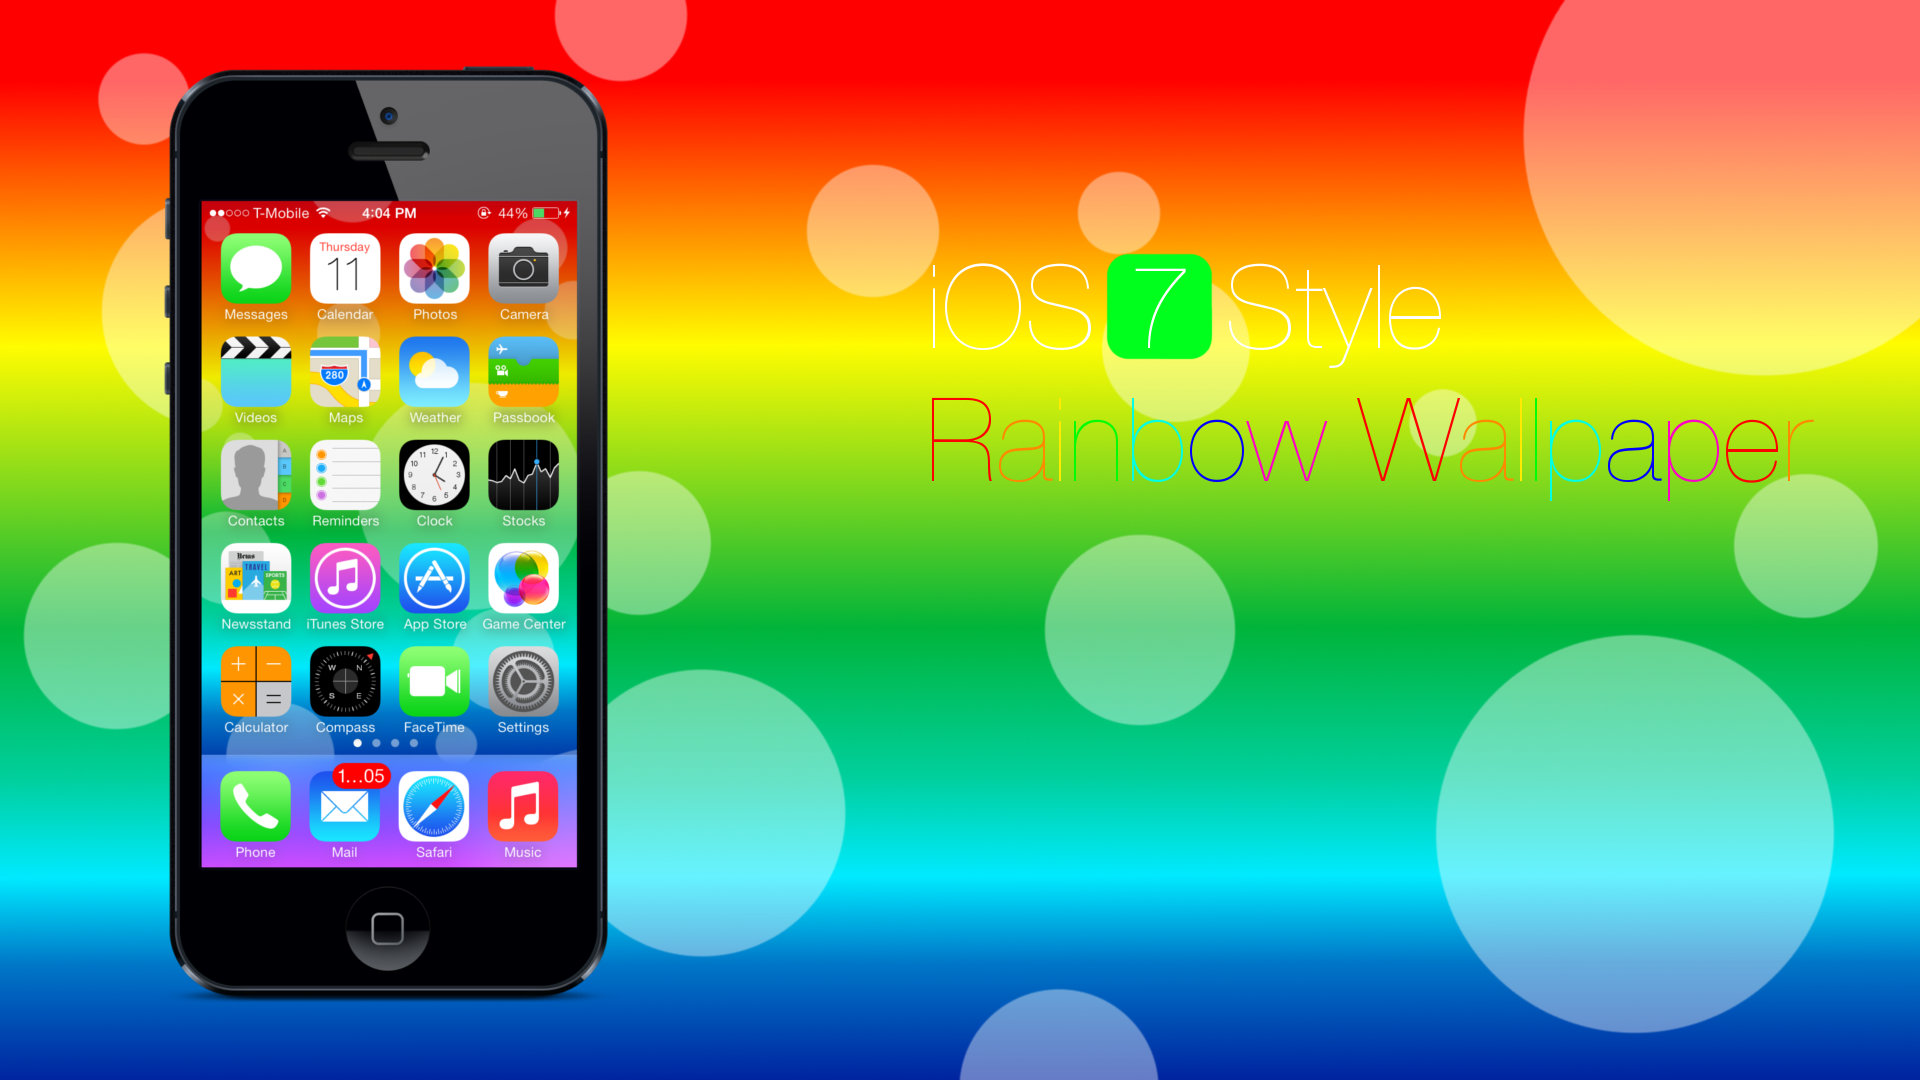 iOS 7 Style Rainbow Wallpaper- iPhone 5 by Star784